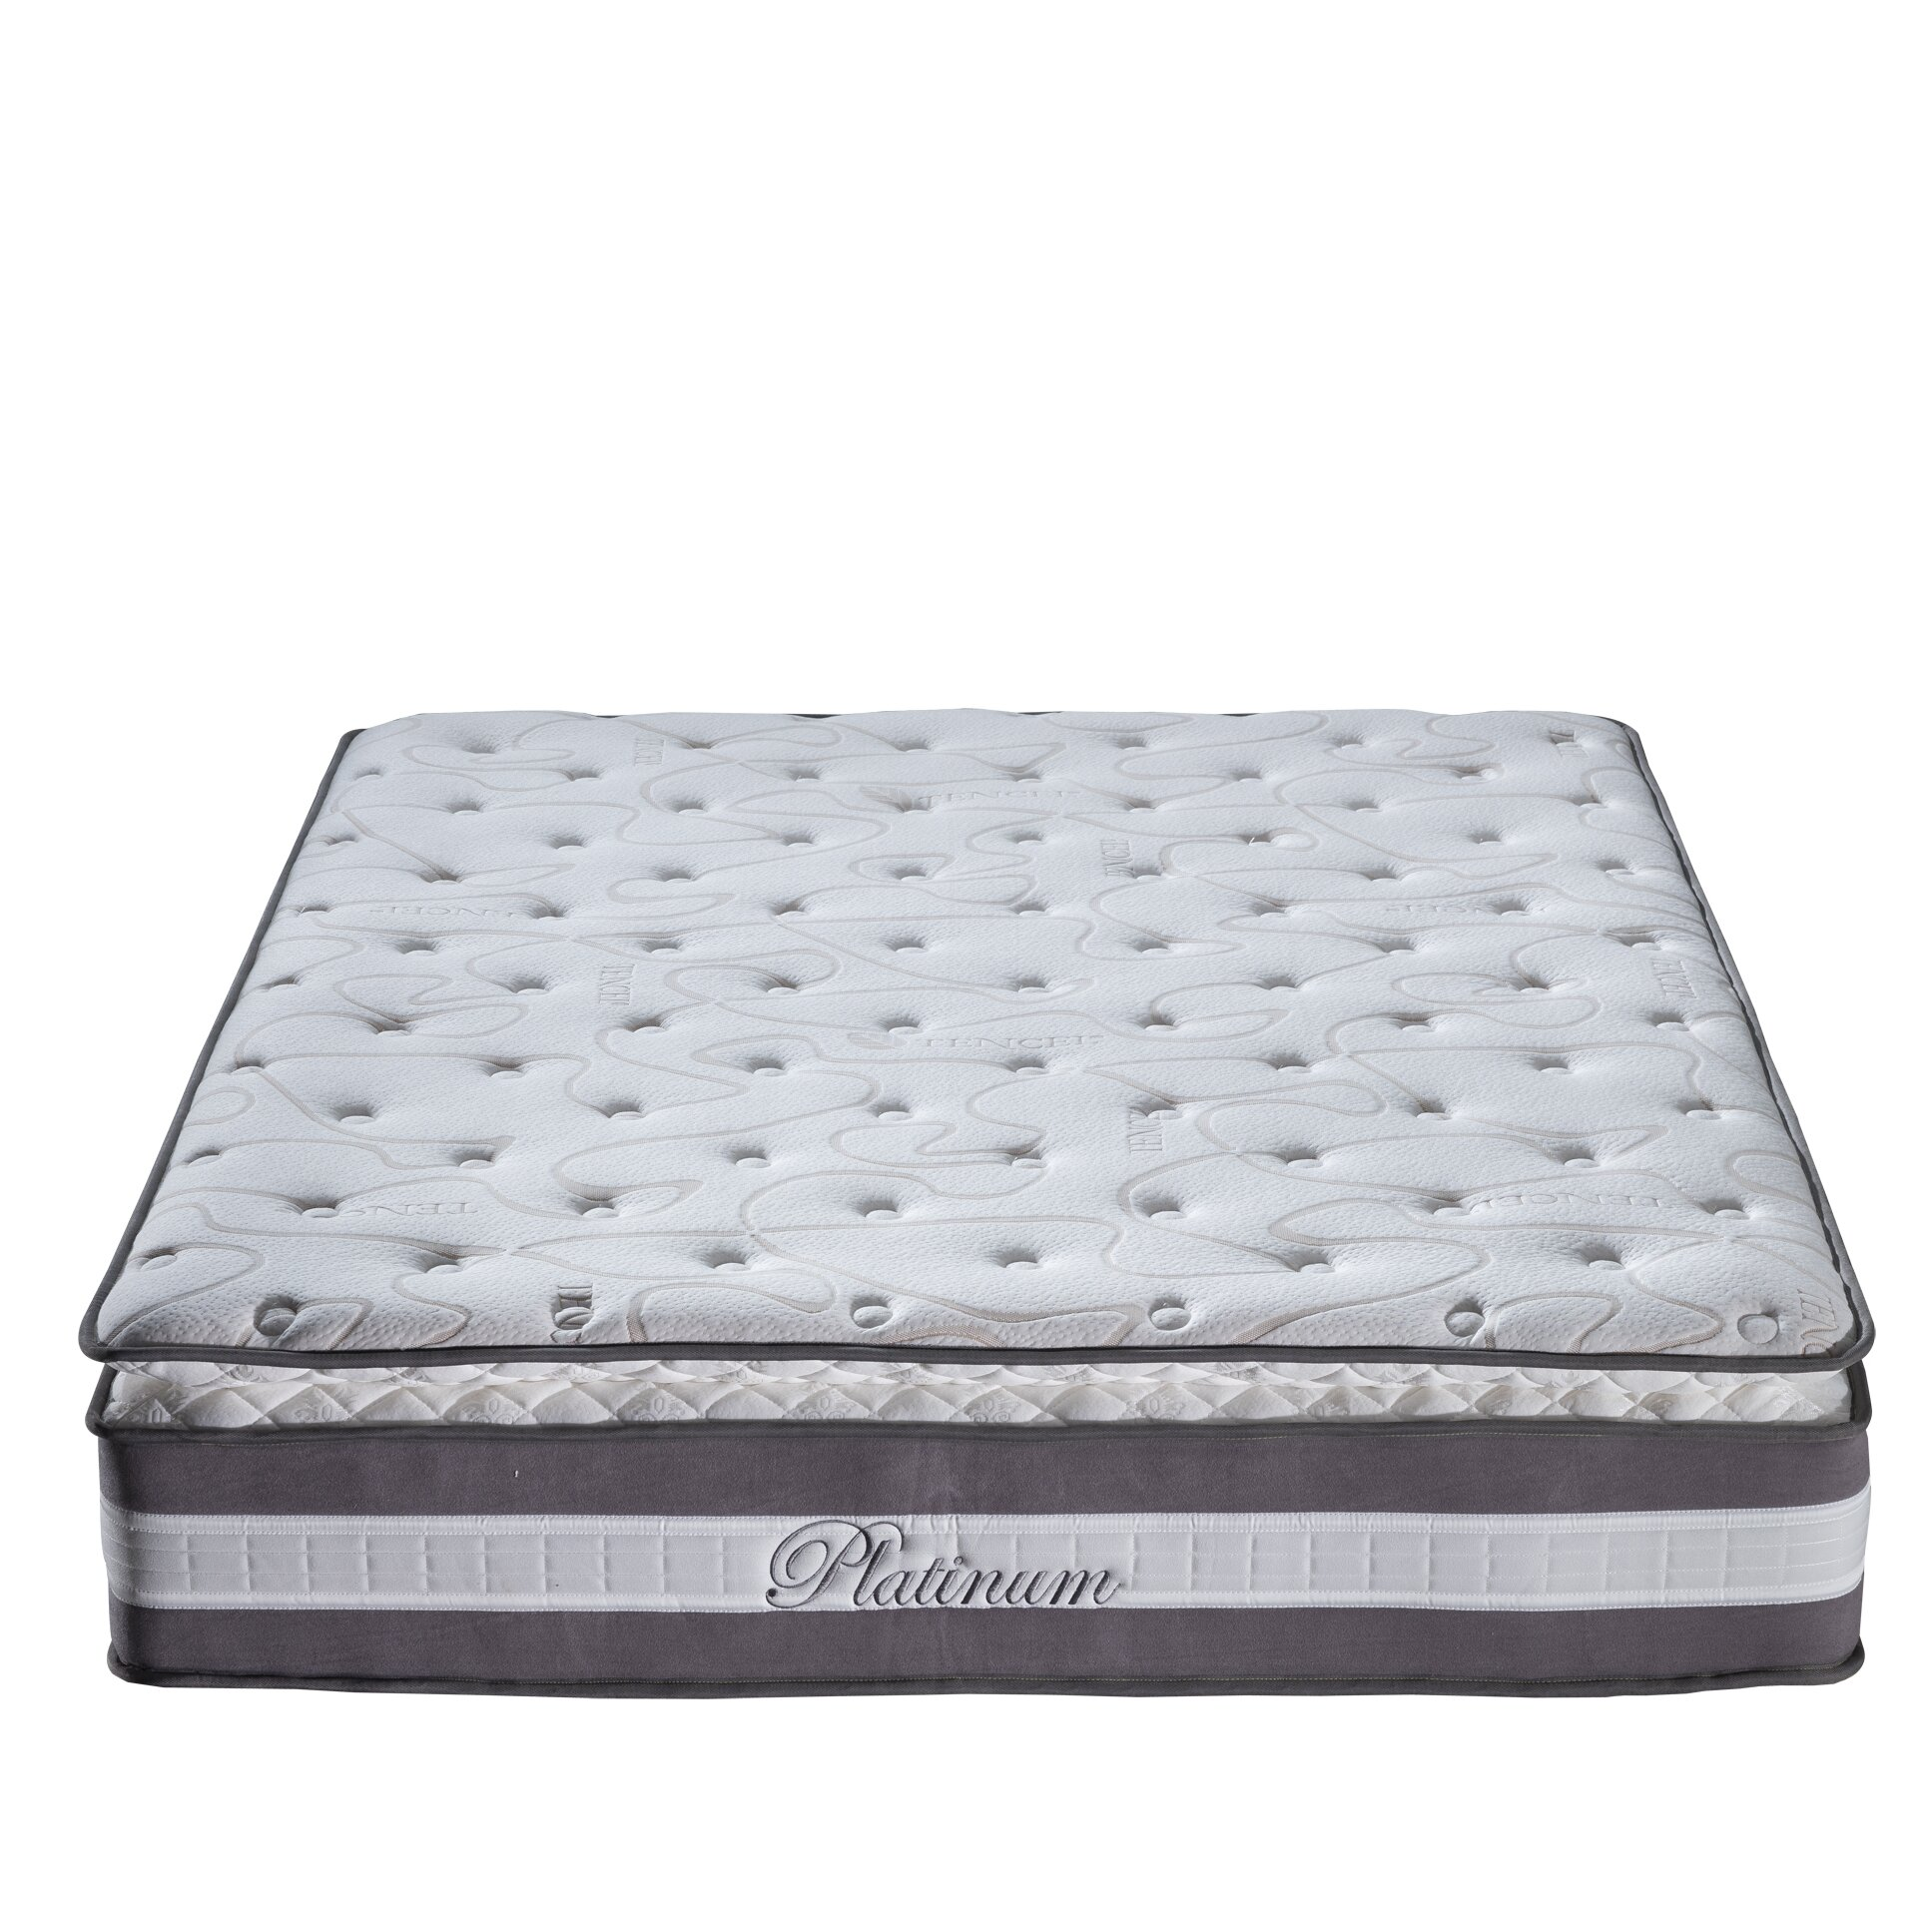 "Madison Home USA 13"" Memory Foam Mattress & Reviews"